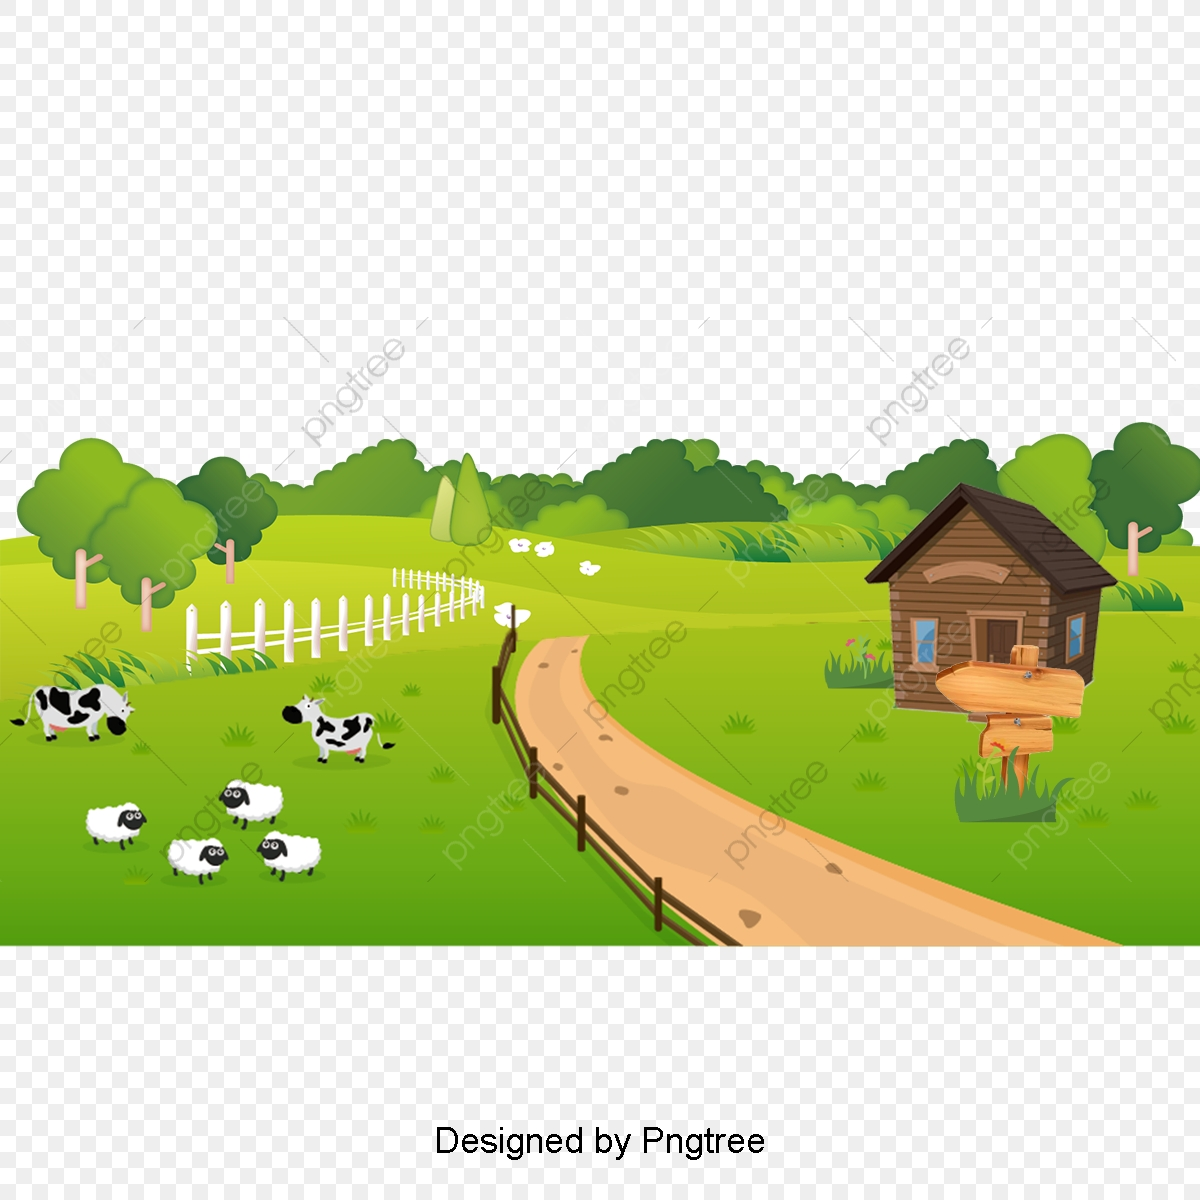 Scenery Clip Art and Stock Illustrations. 99,185 Scenery EPS illustrations  and vector clip art graphics available to search from thousands of royalty  free stock art creators.